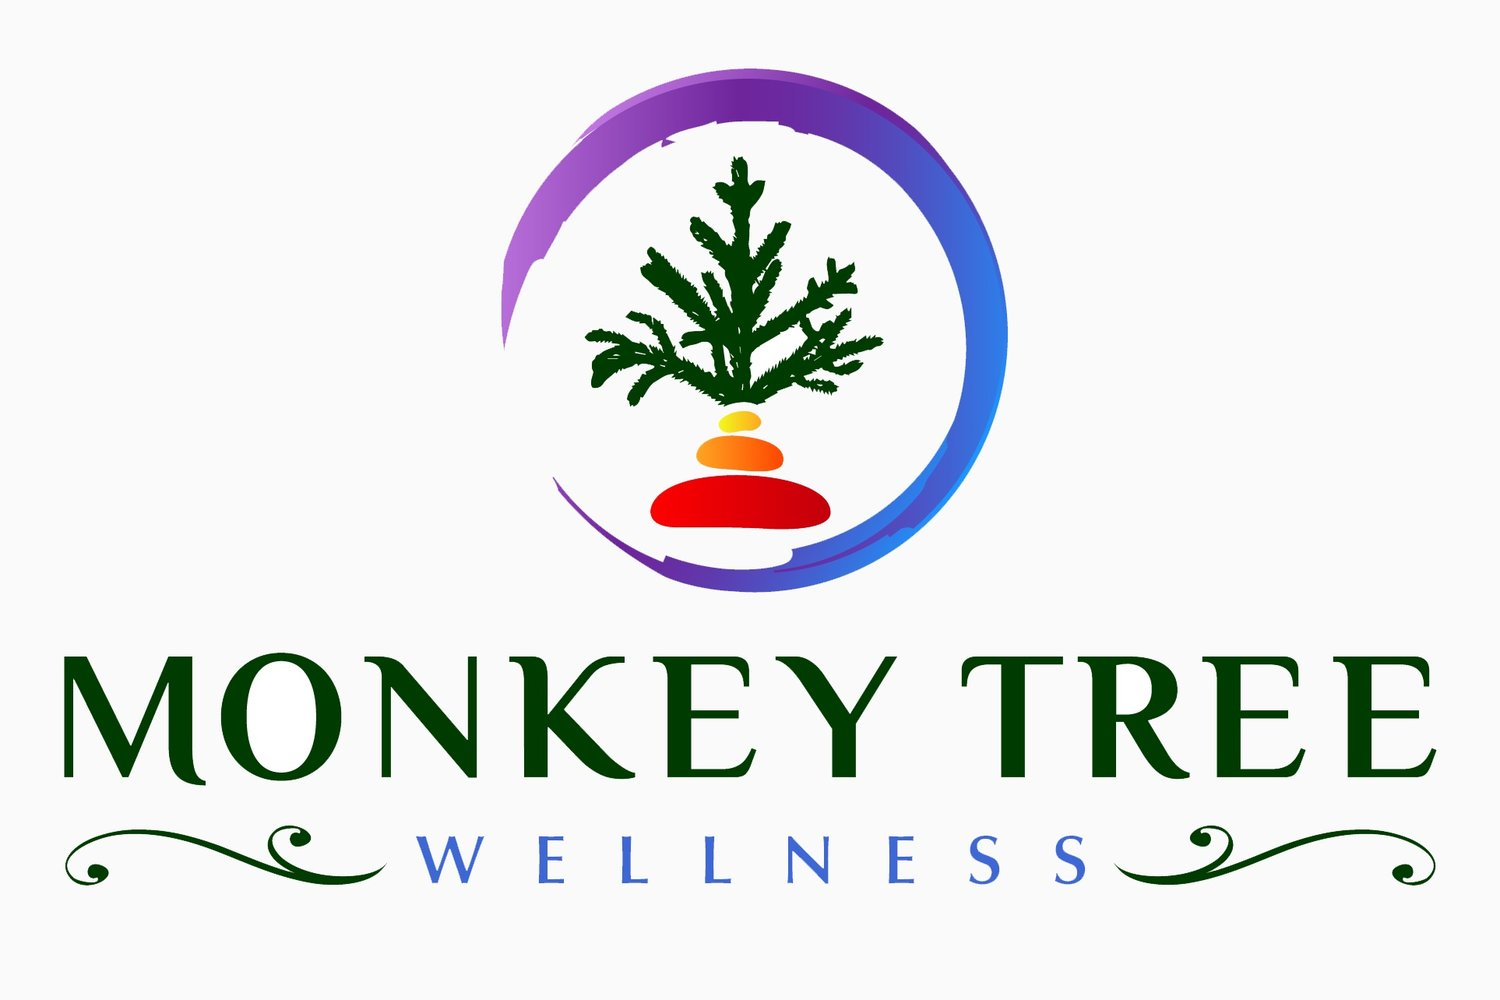 MONKEY TREE WELLNESS